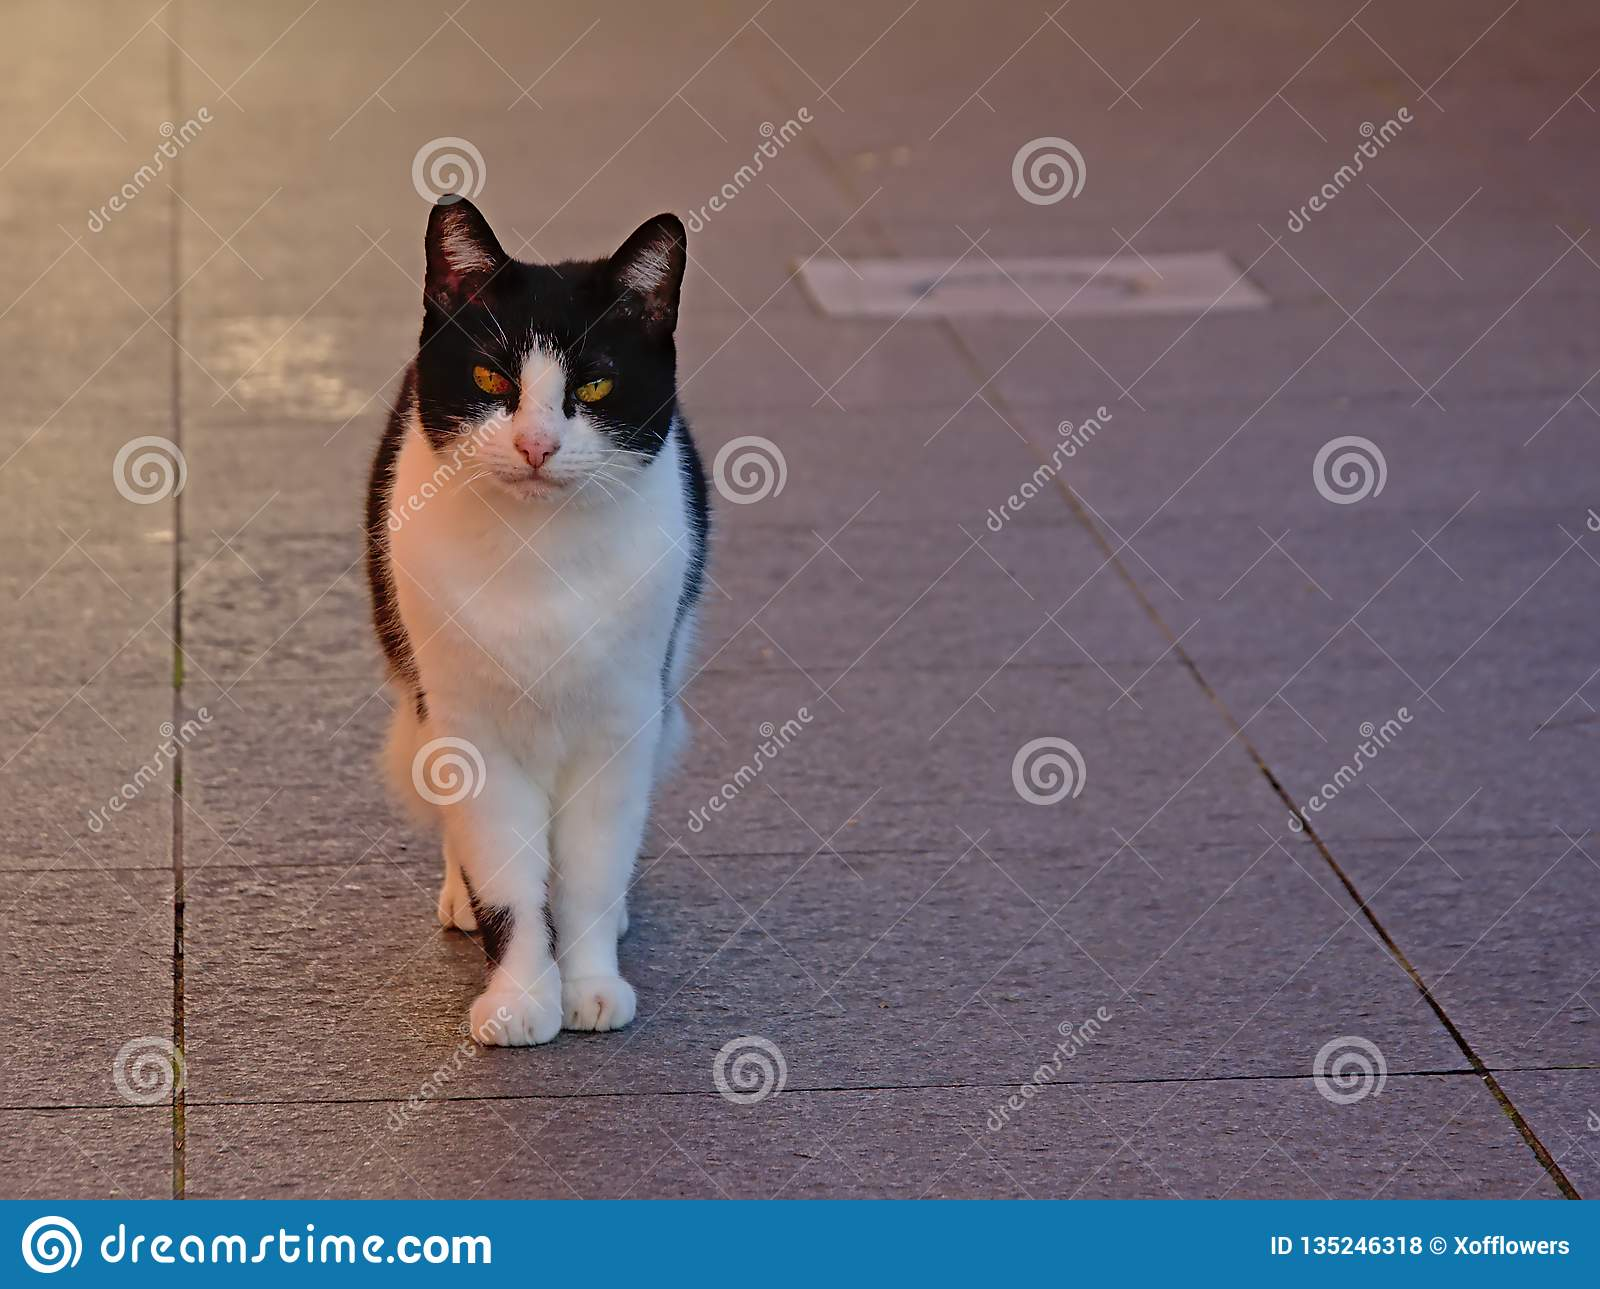 Cute cat standing on a terace